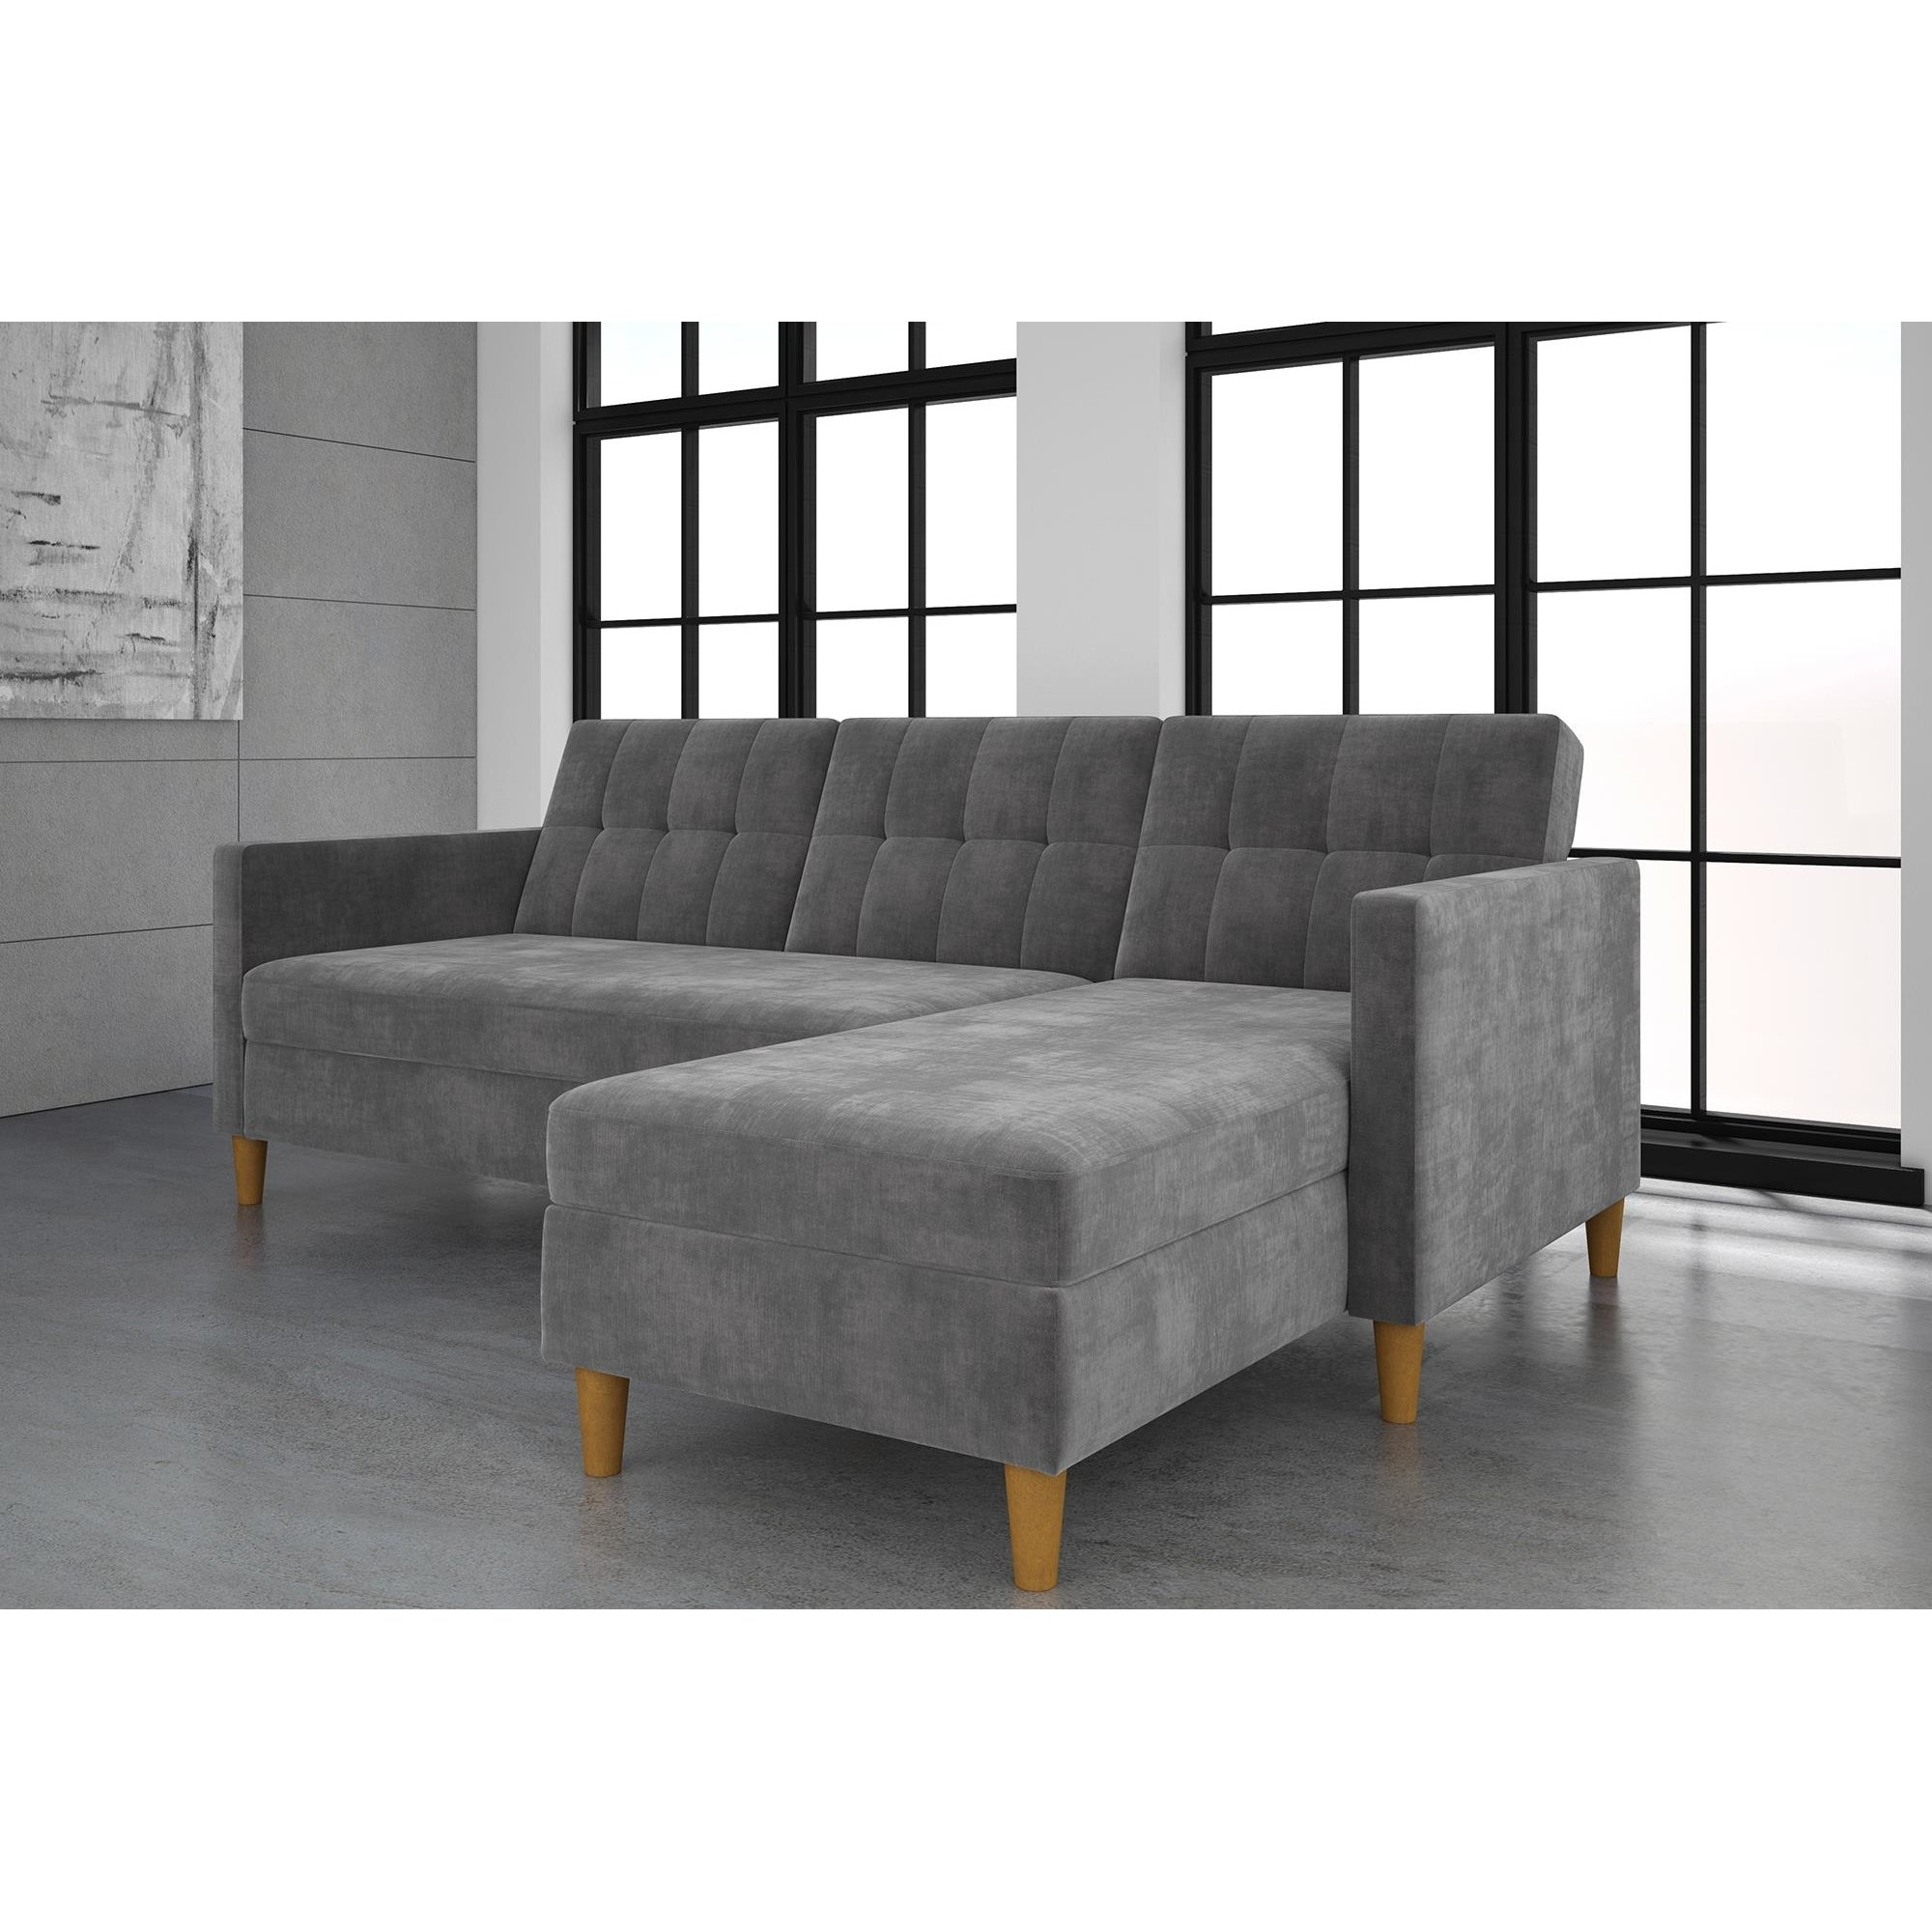 Fashionable Stigall Futon Storage Reversible Sleeper Sectional (View 4 of 15)